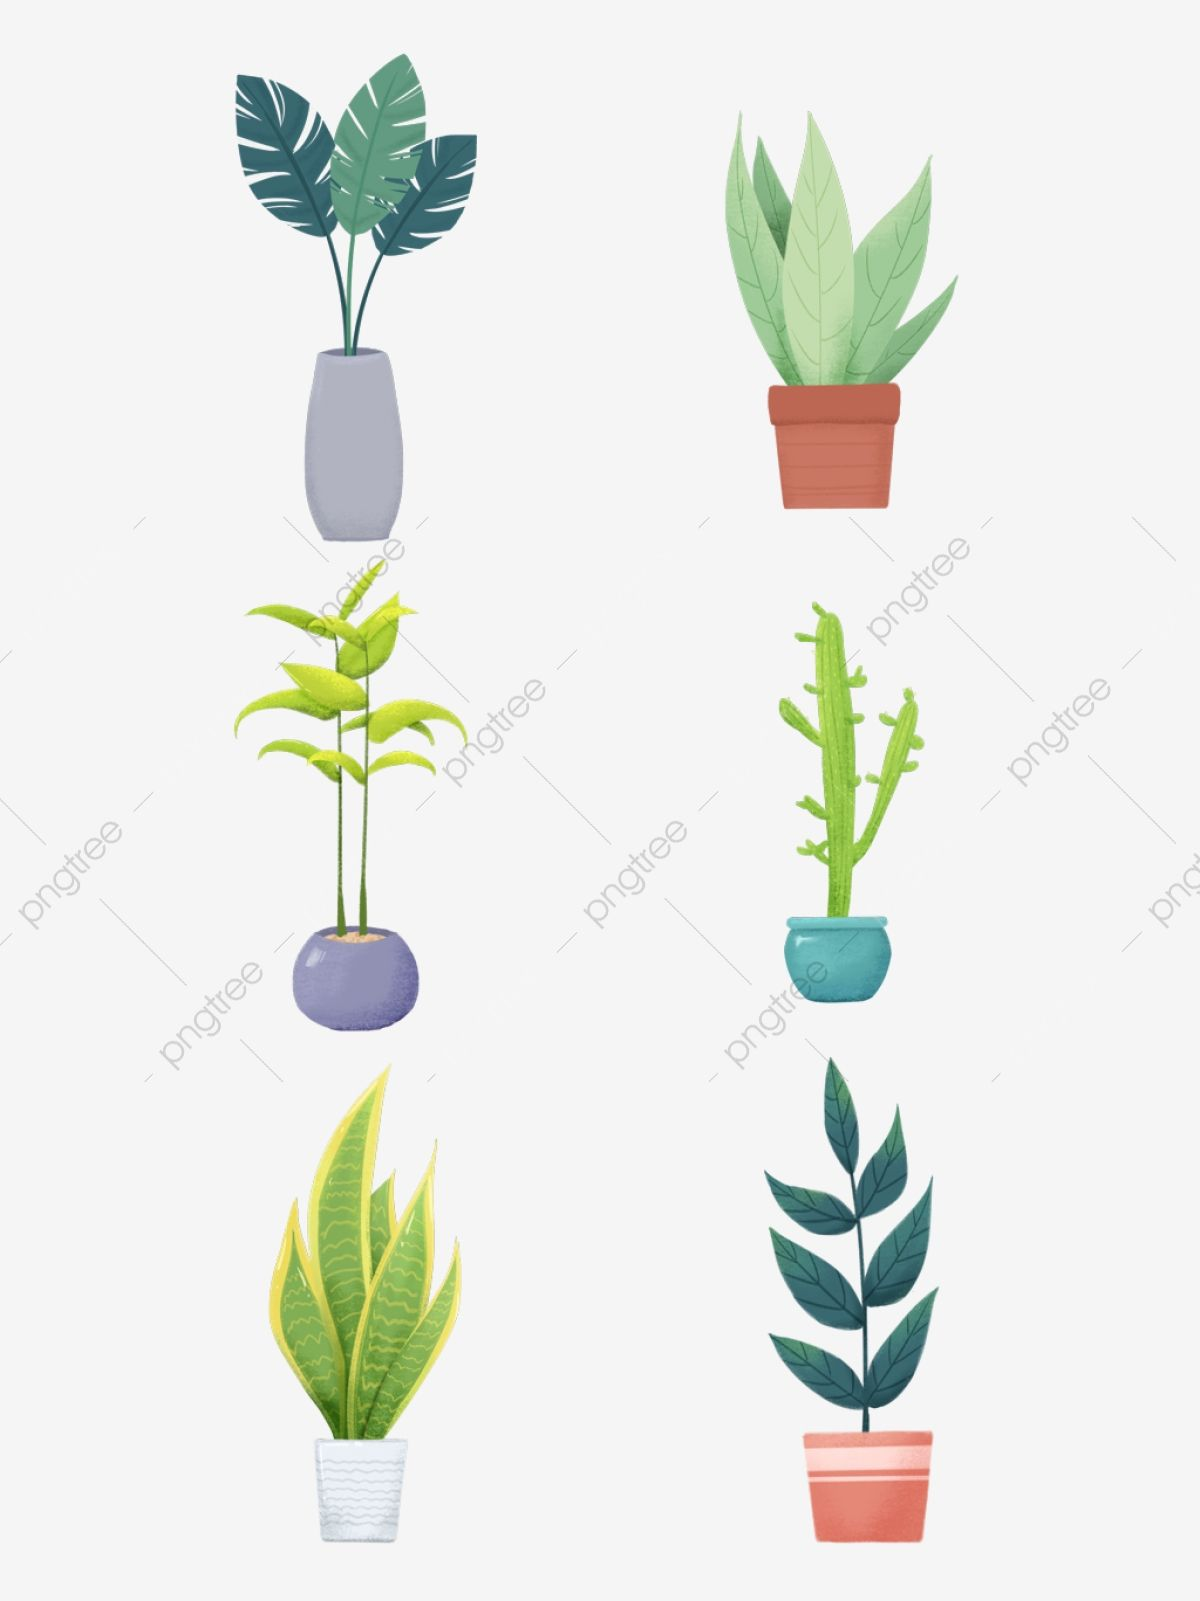 Simple Nordic Hand Painted Plants Indoor Potted Cartoon Elements Set Decoration Hand Painted Illustrator Style Png Transparent Clipart Image And Psd File For Plant Vector Plants Plant Cartoon